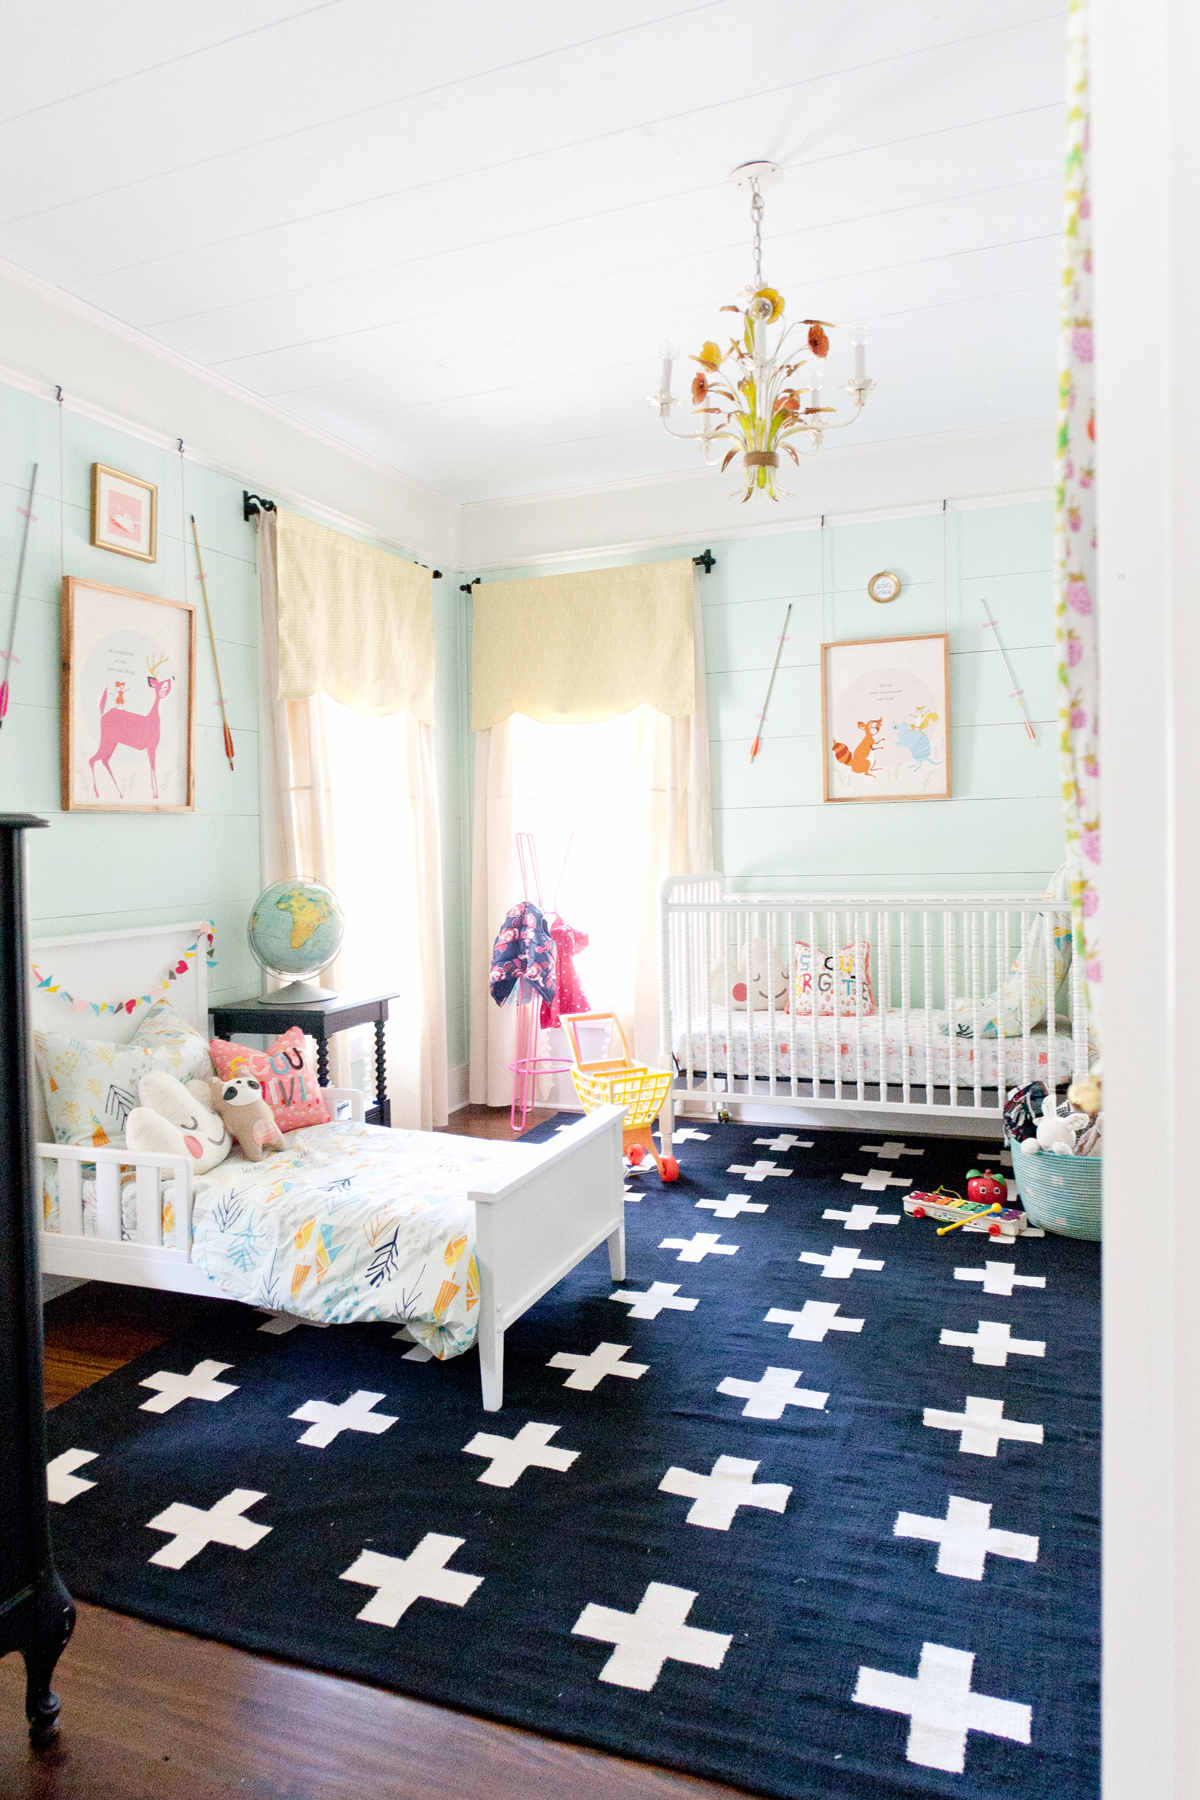 Shared room inspiration lay baby lay lay baby lay for Unisex bedroom inspiration